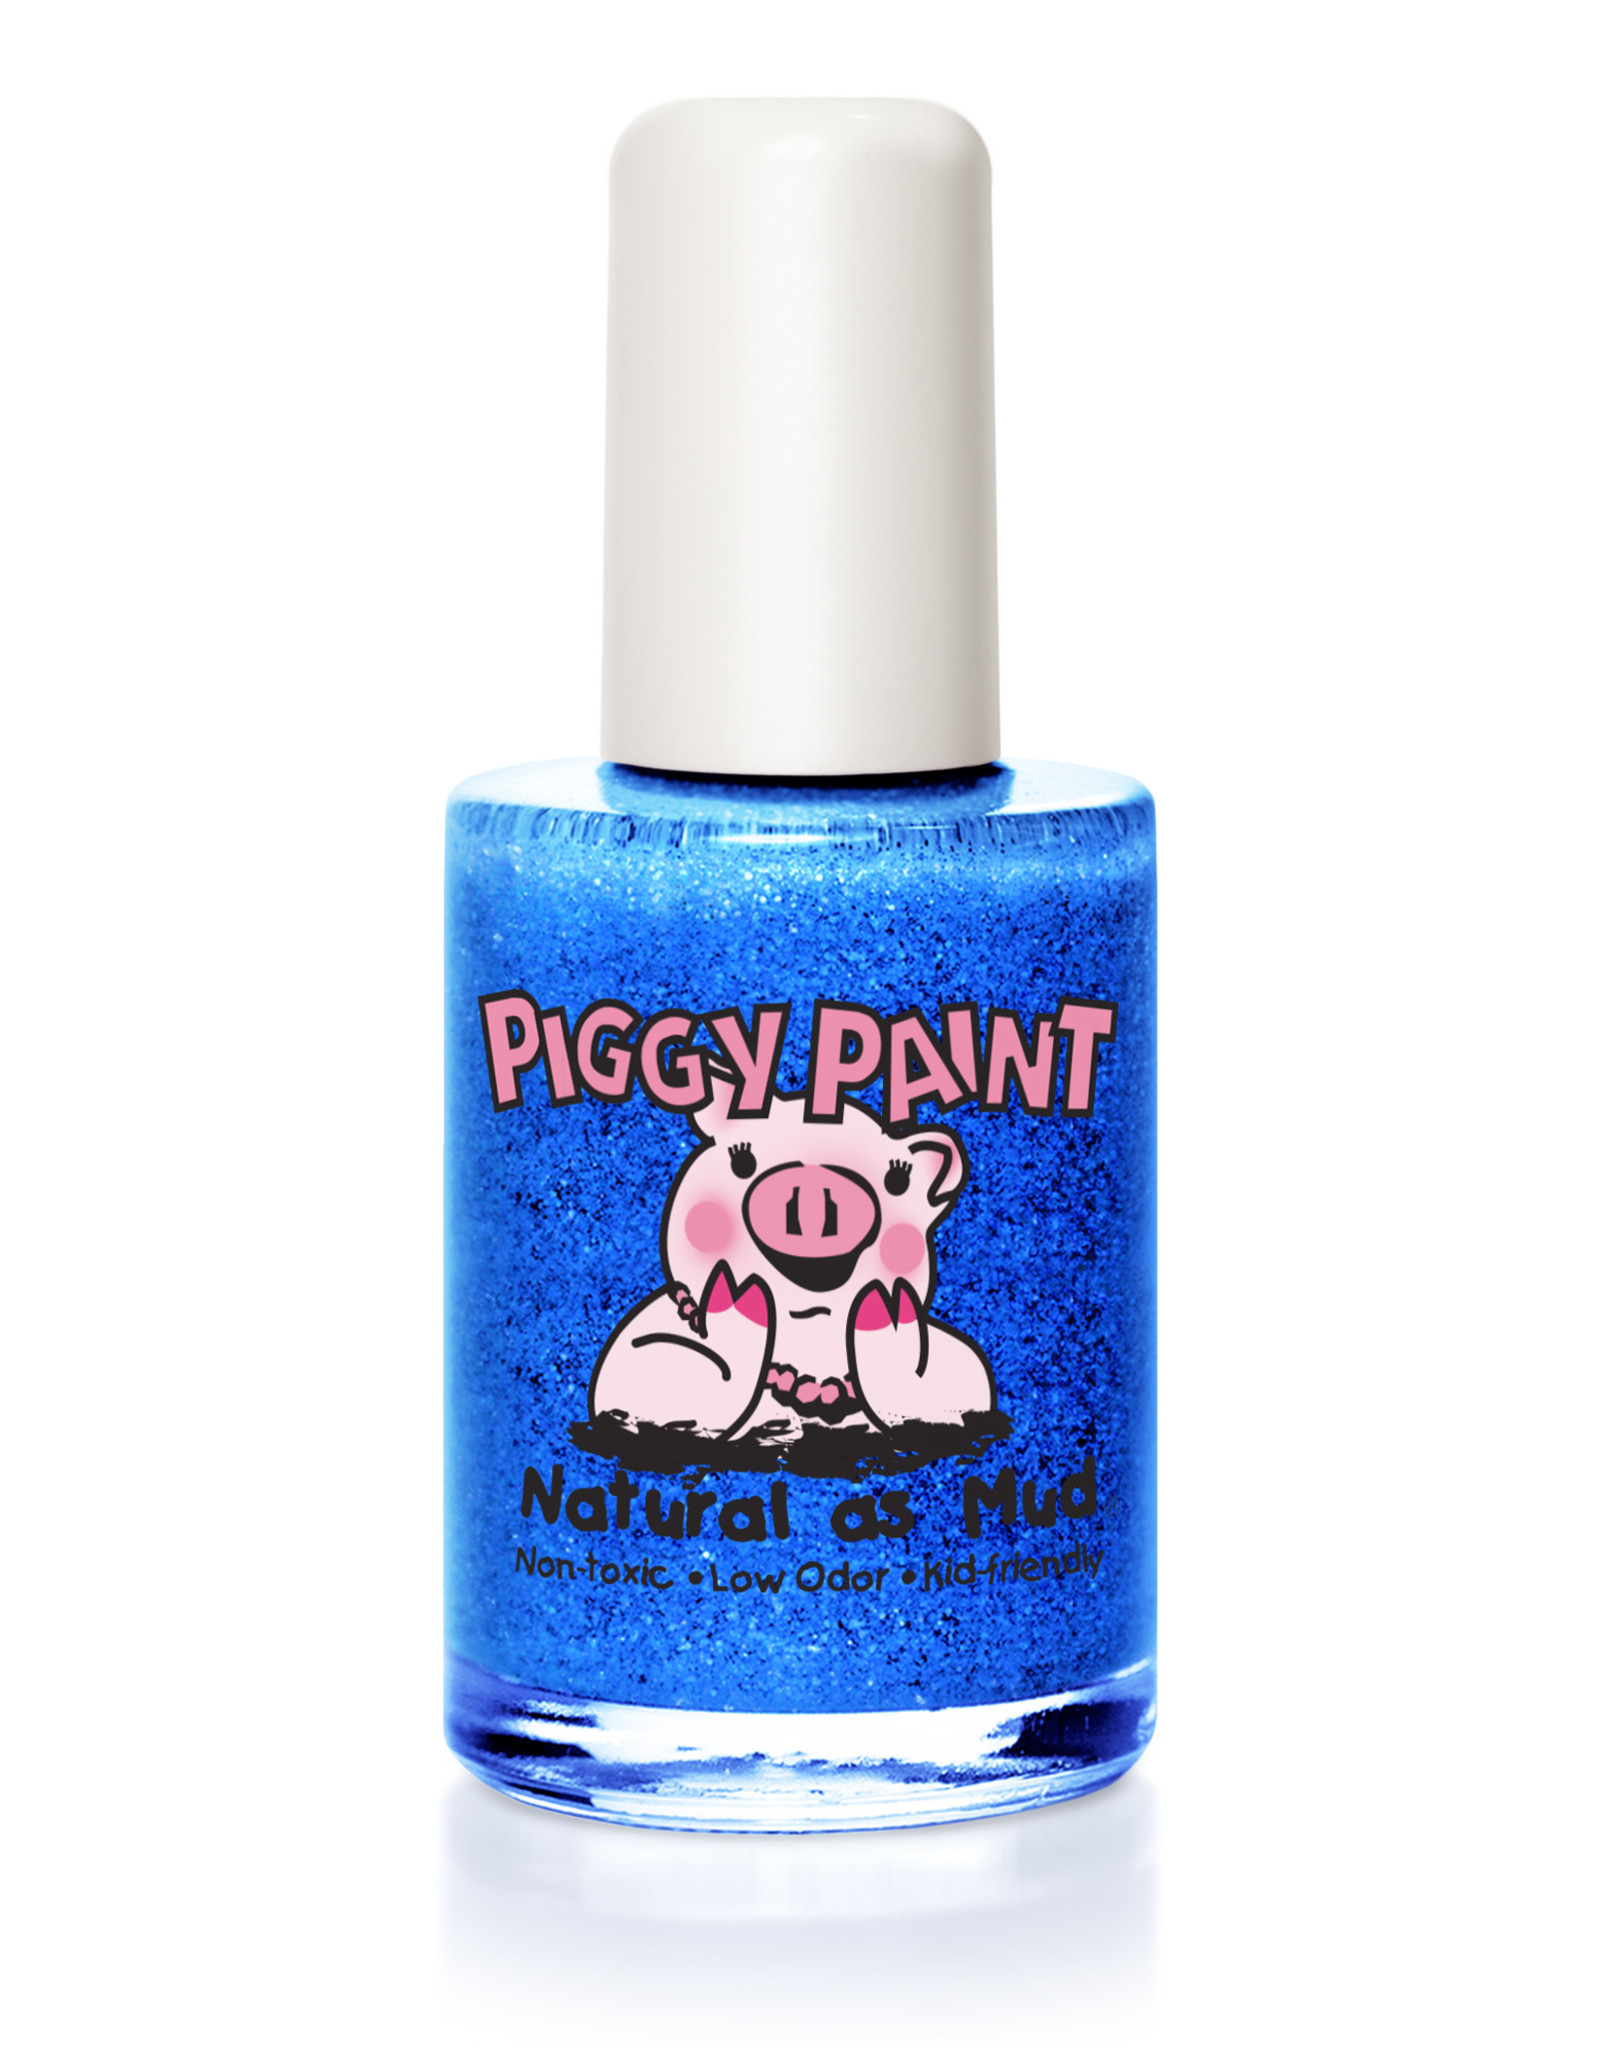 Piggy paints Vernis à ongle non toxique  Mer-maid in the Shade